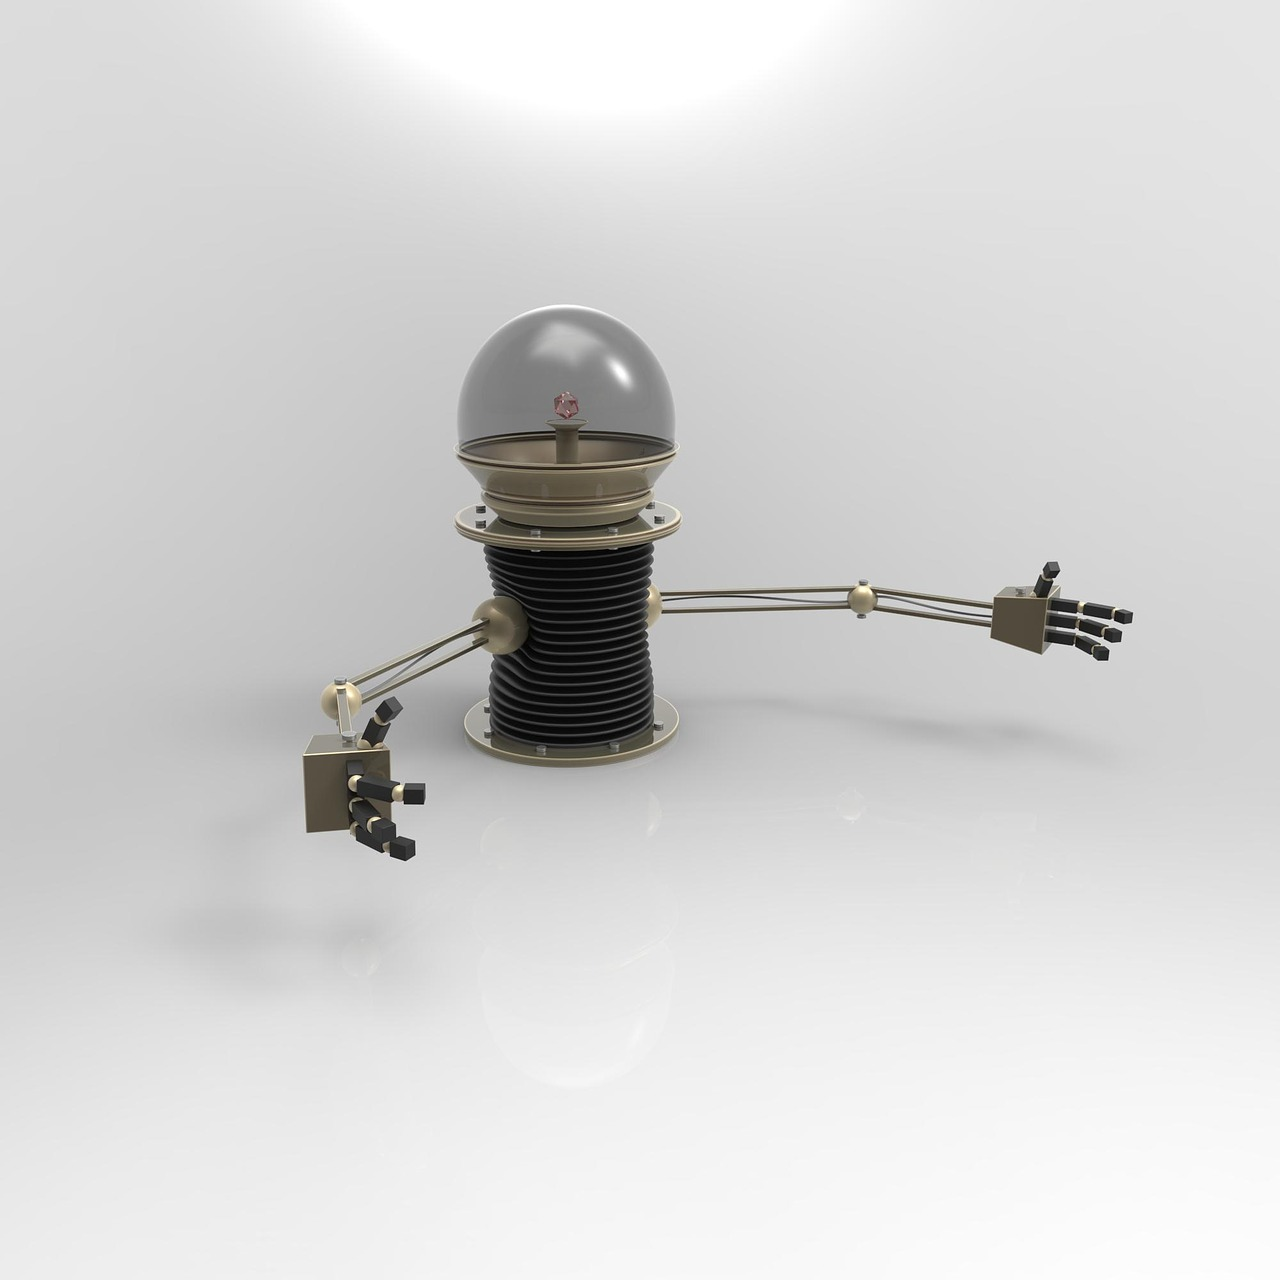 Robot with long arms and light bulb head